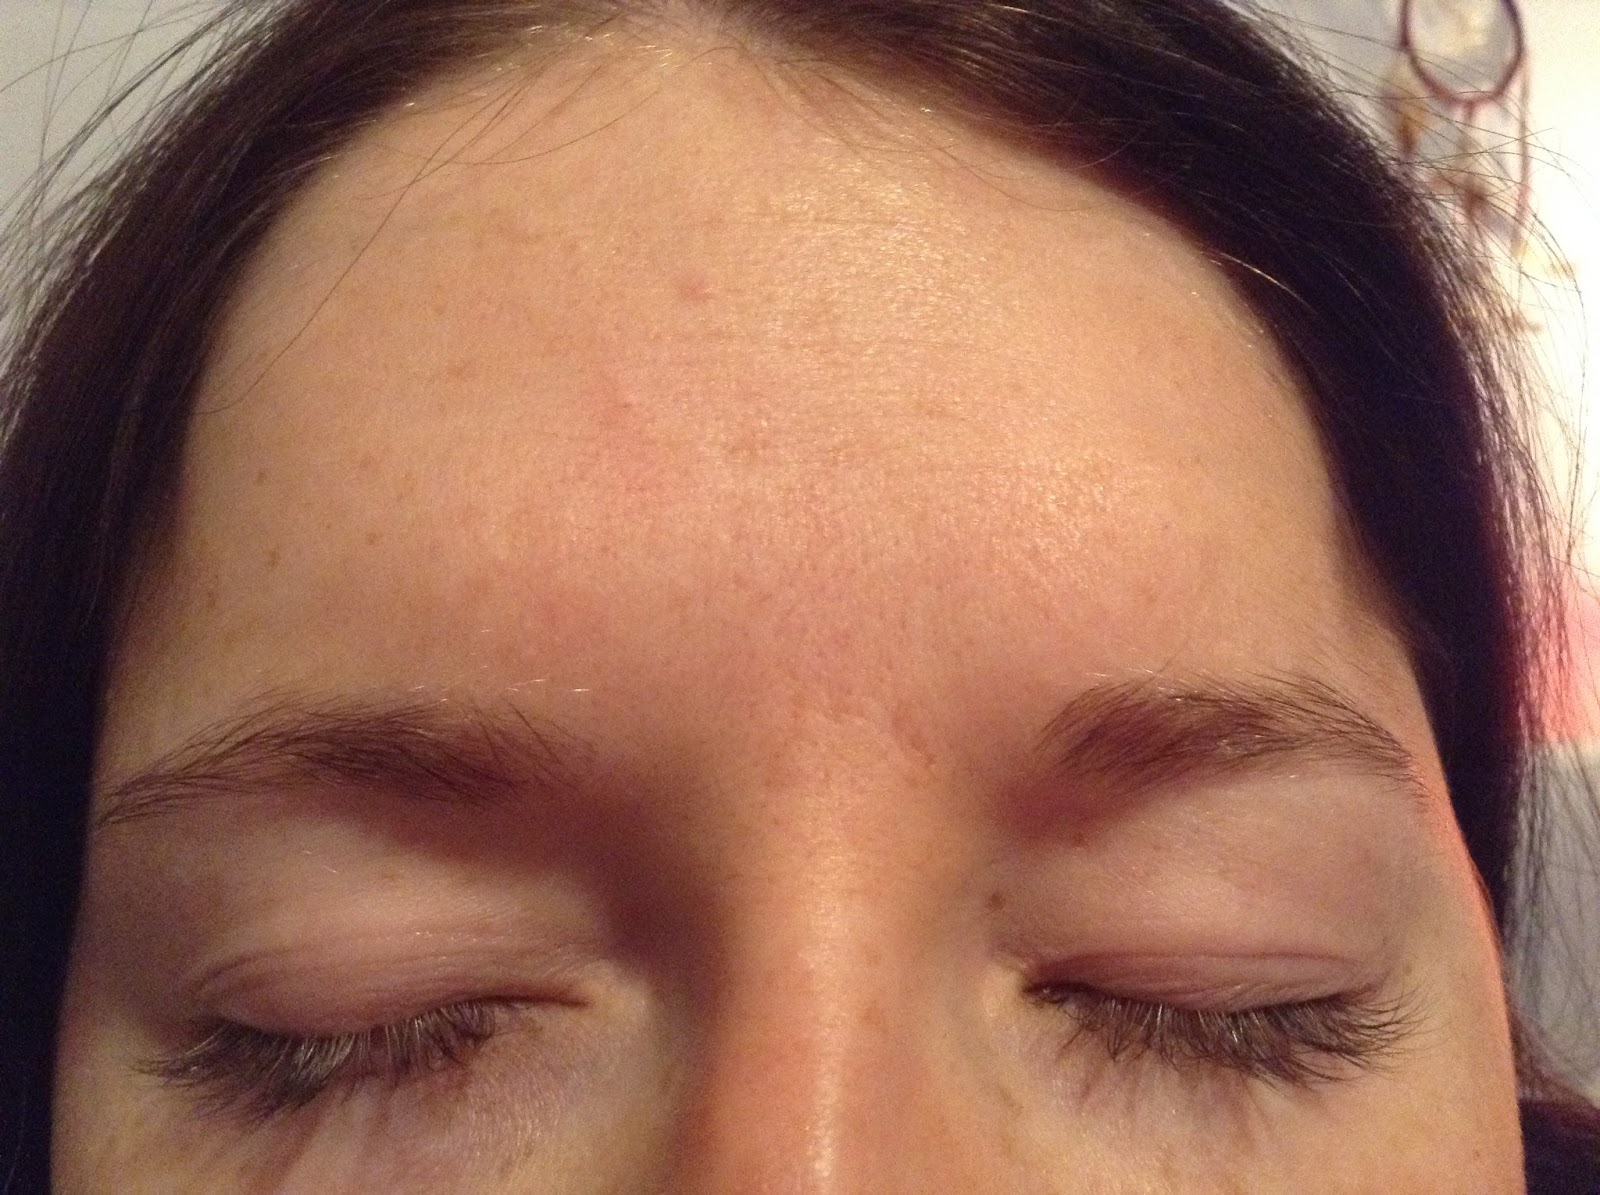 1000 Hour Eyelash And Brow Dye Kit Review Katie Martin